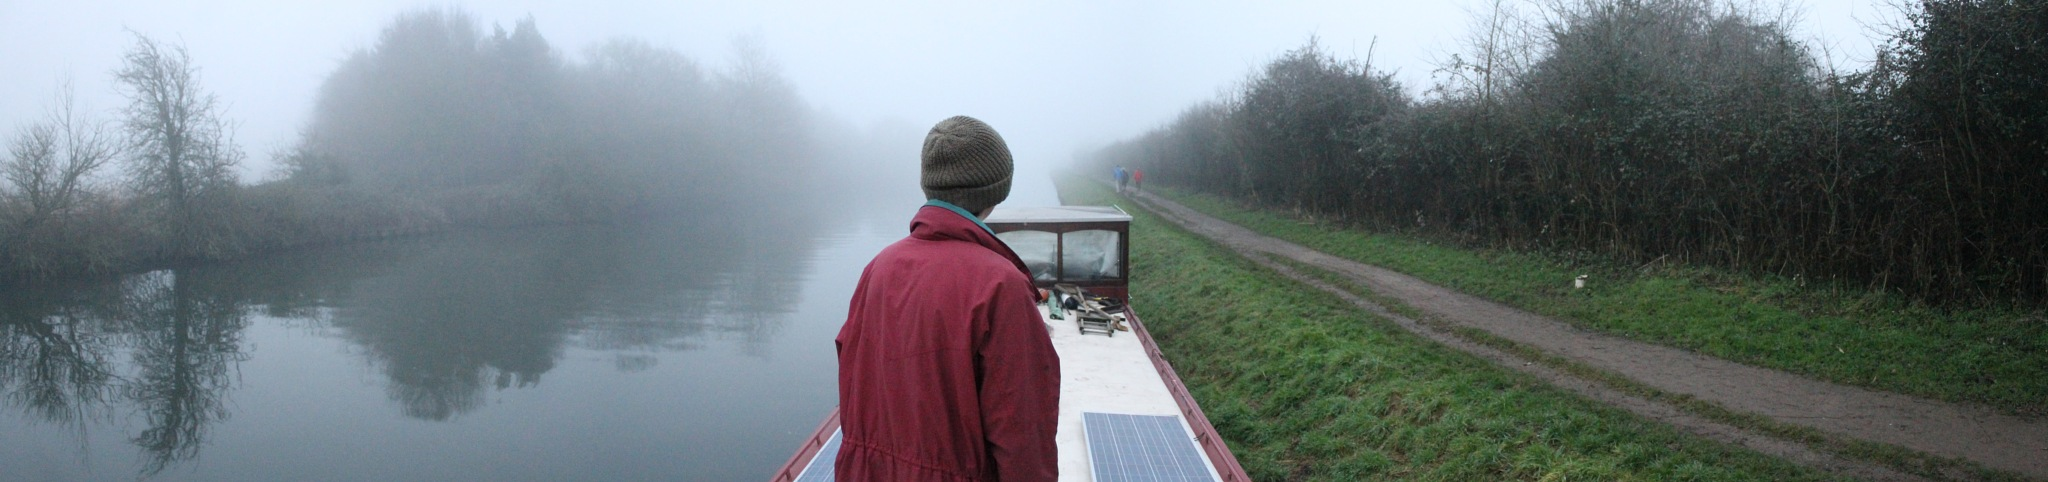 Panorama on mates boat on a cloudy day by Rudi Beauchamp